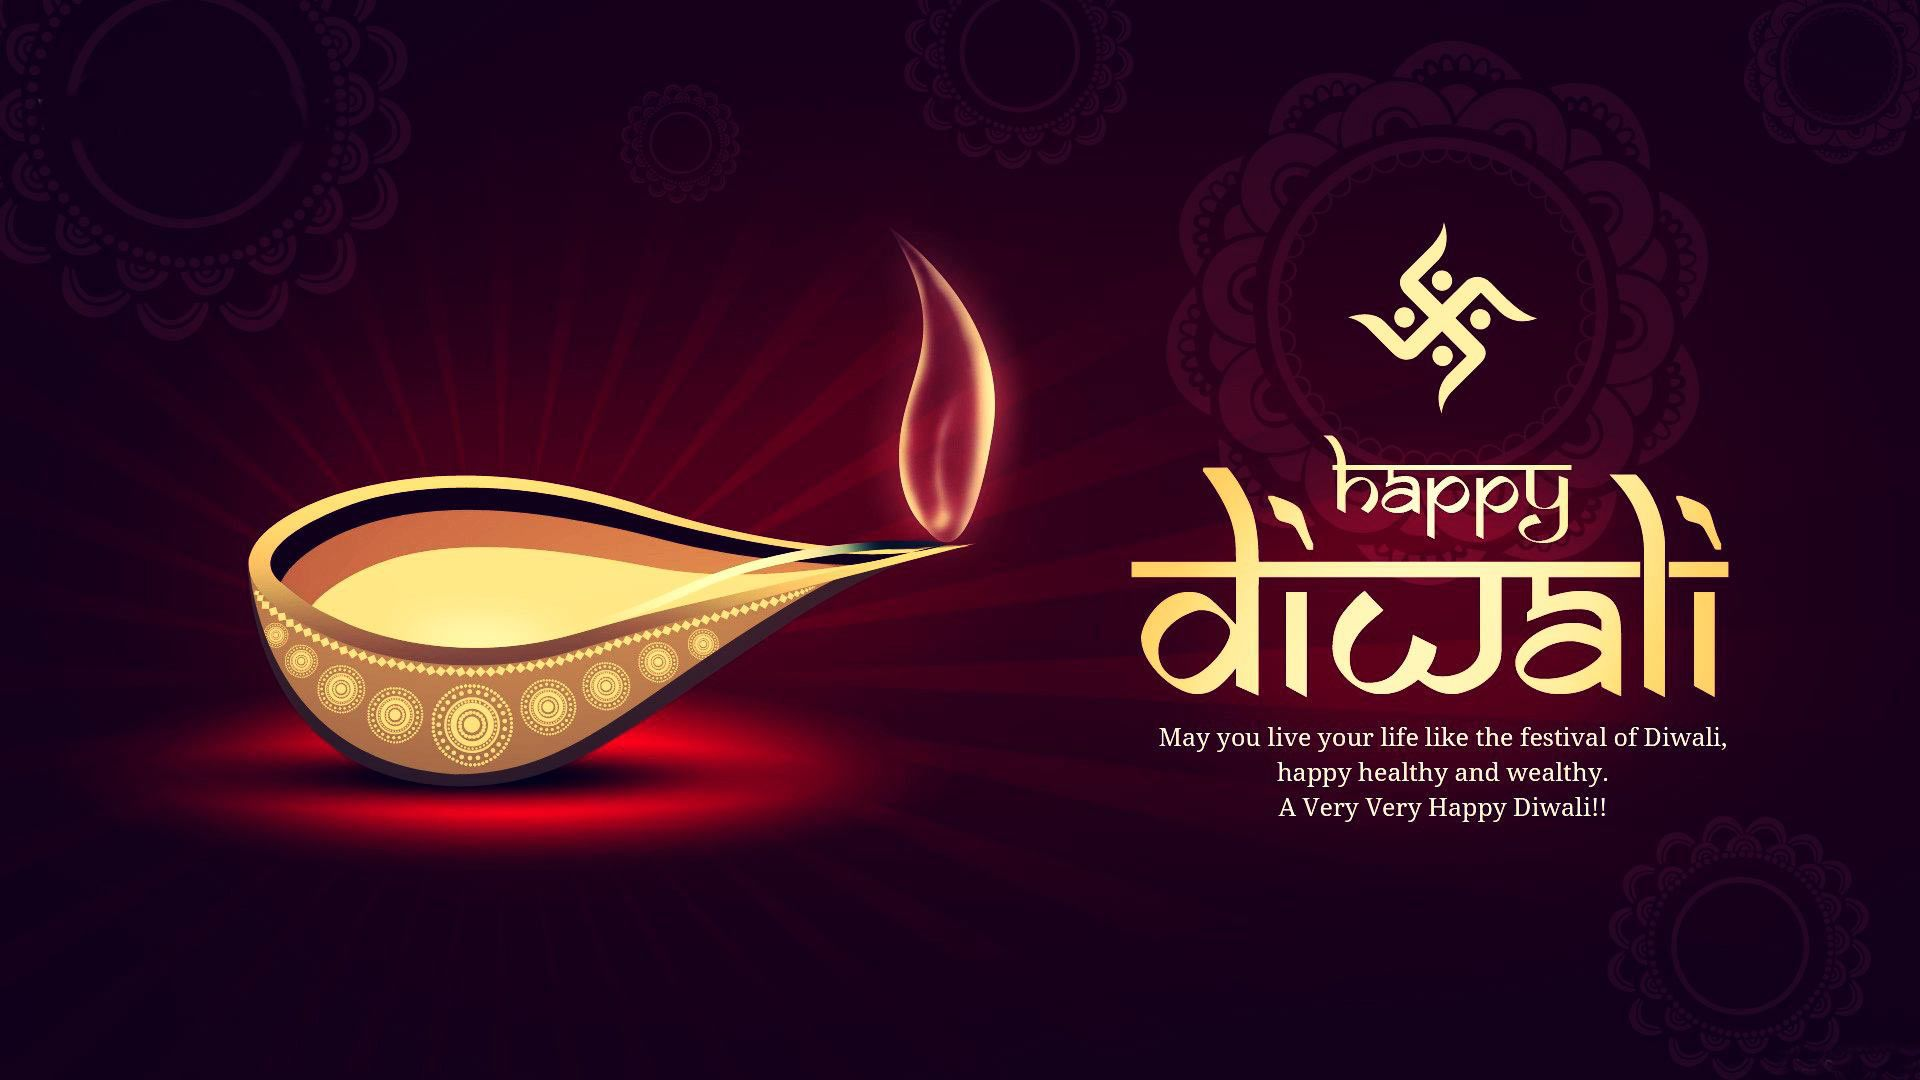 Happy diwali new sms imageswallpapers and greeting cards download happy diwali new sms imageswallpapers and greeting cards download free http kristyandbryce Image collections